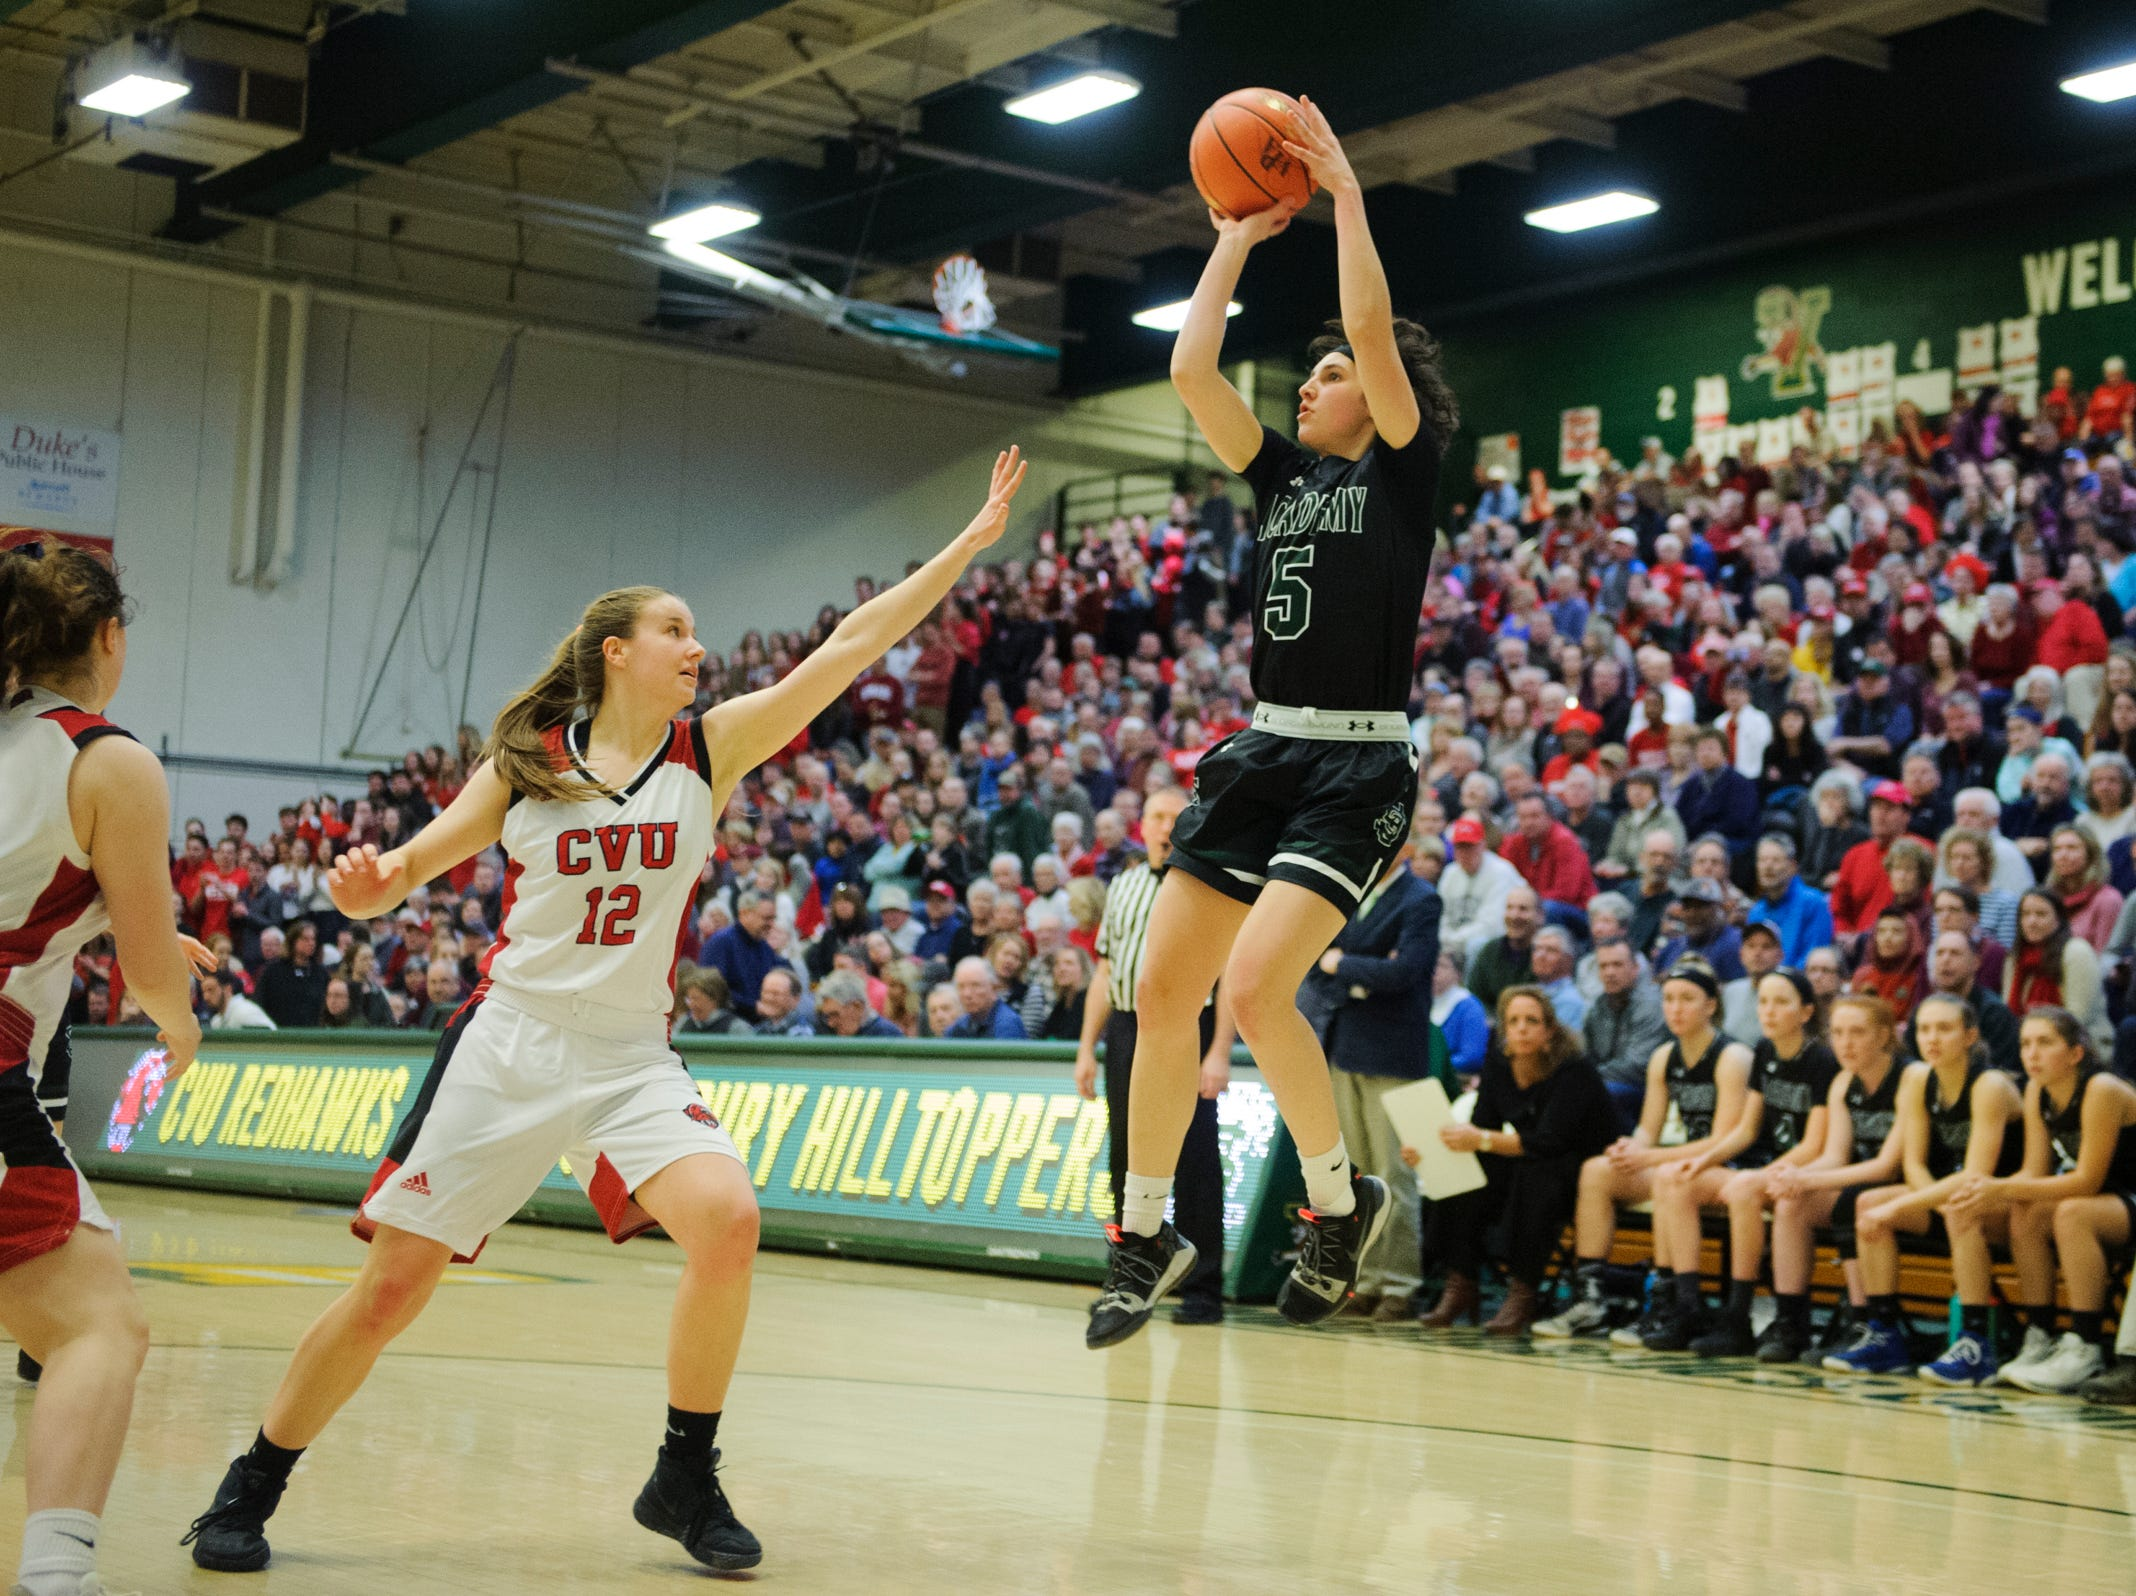 St. Johnsbury's Sadie Stetson (5) shoots the ball over CVU's Harper Mead (12) during the division I girls basketball championship basketball game between the St. Johnsbury Hilltoppers and the Champlain Valley Union Redhawks at Patrick Gym on Sunday afternoon March 10, 2019 in Burlington, Vermont.